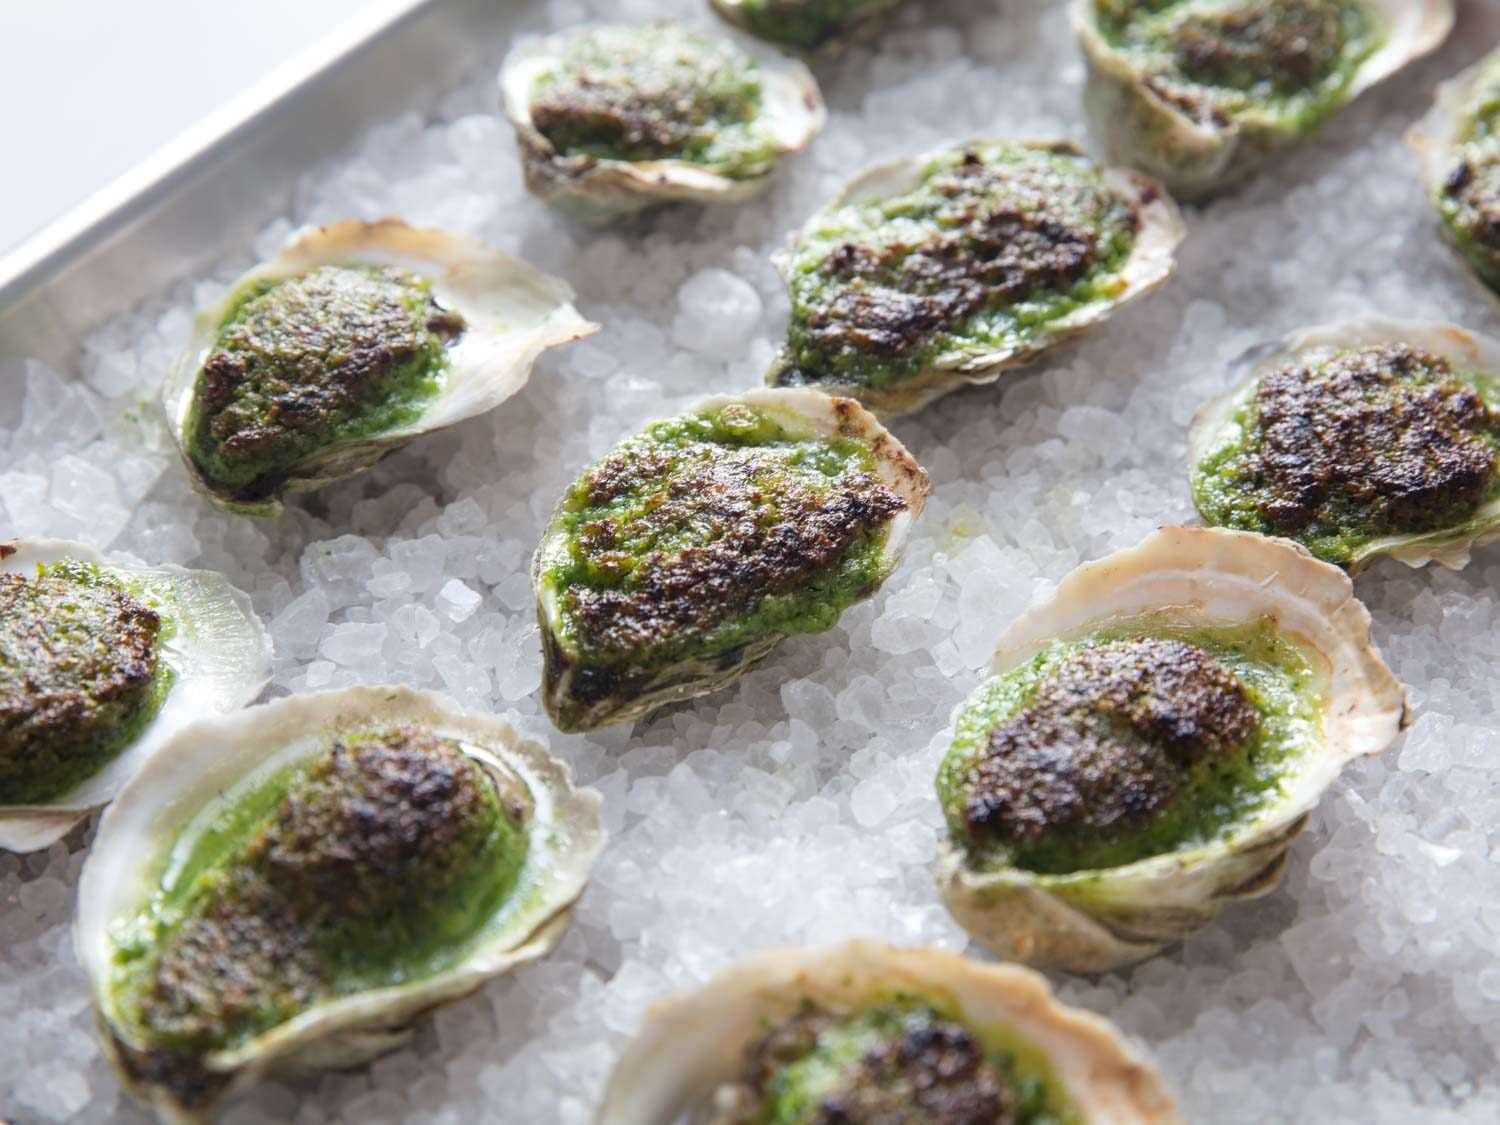 Oysters Rockefeller (broiled oysters with herb/butter sauce) lined up on a sheet pan